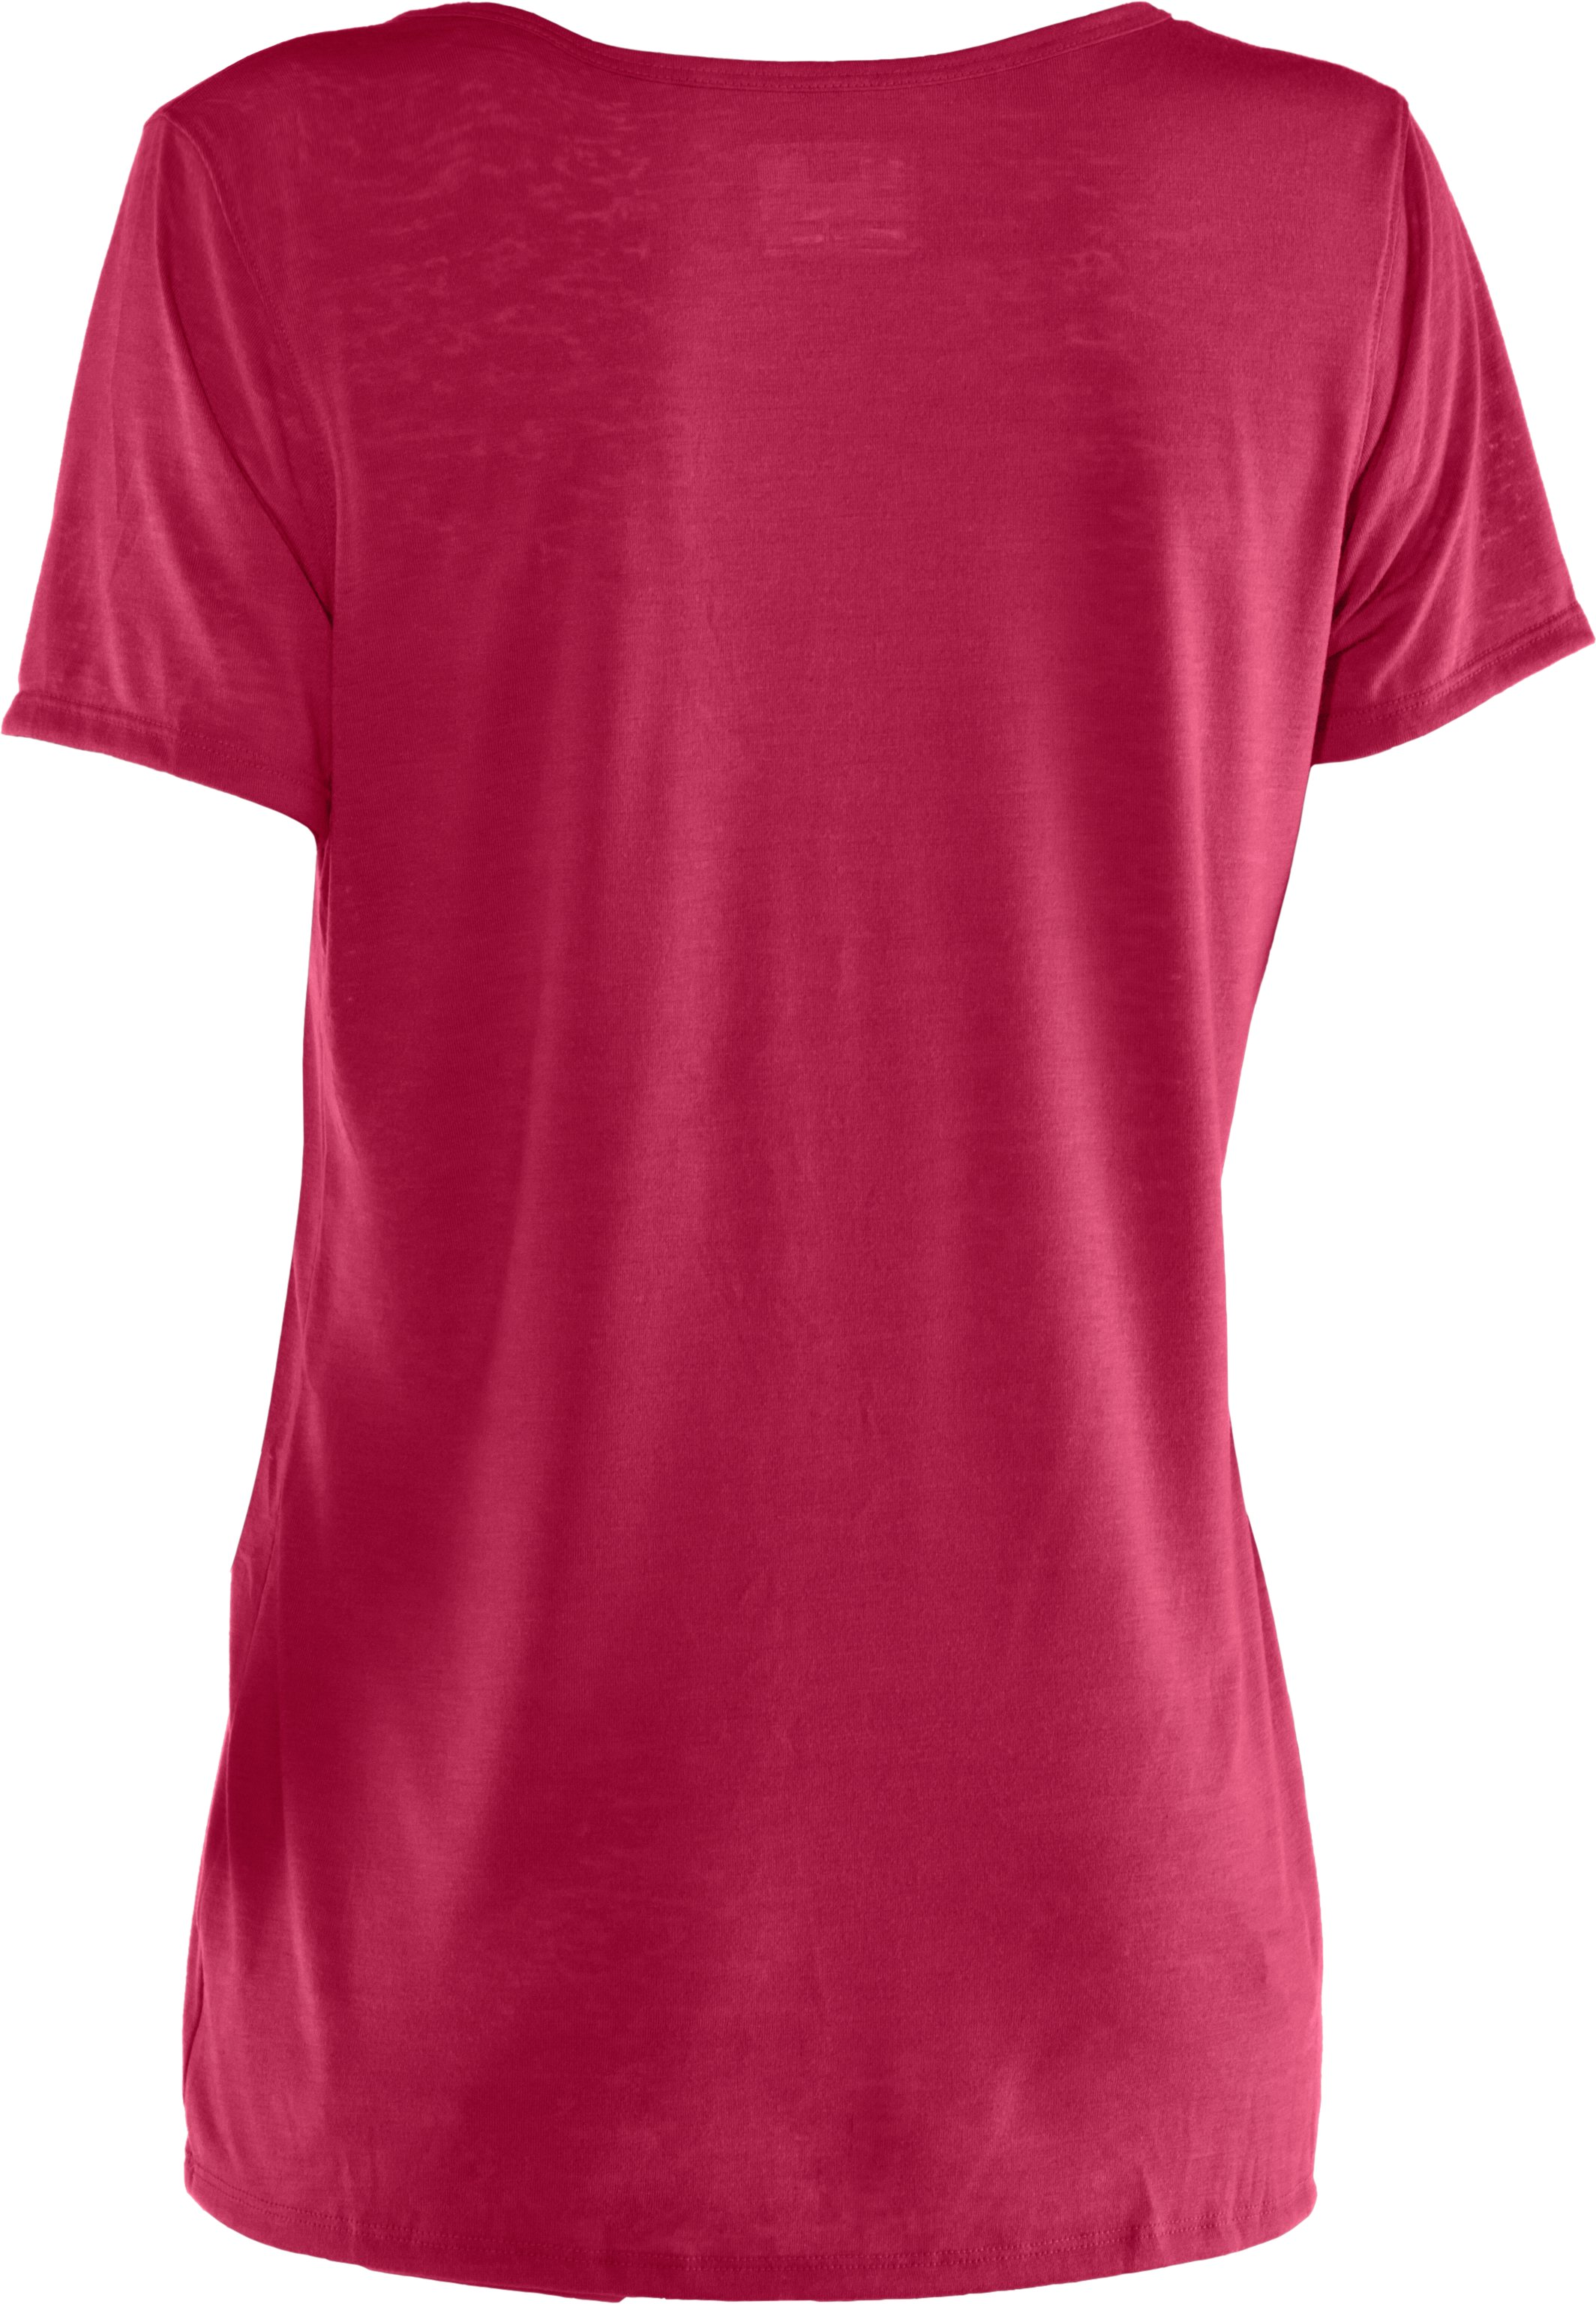 Women's Achieve Burnout T-Shirt, Ultra, undefined